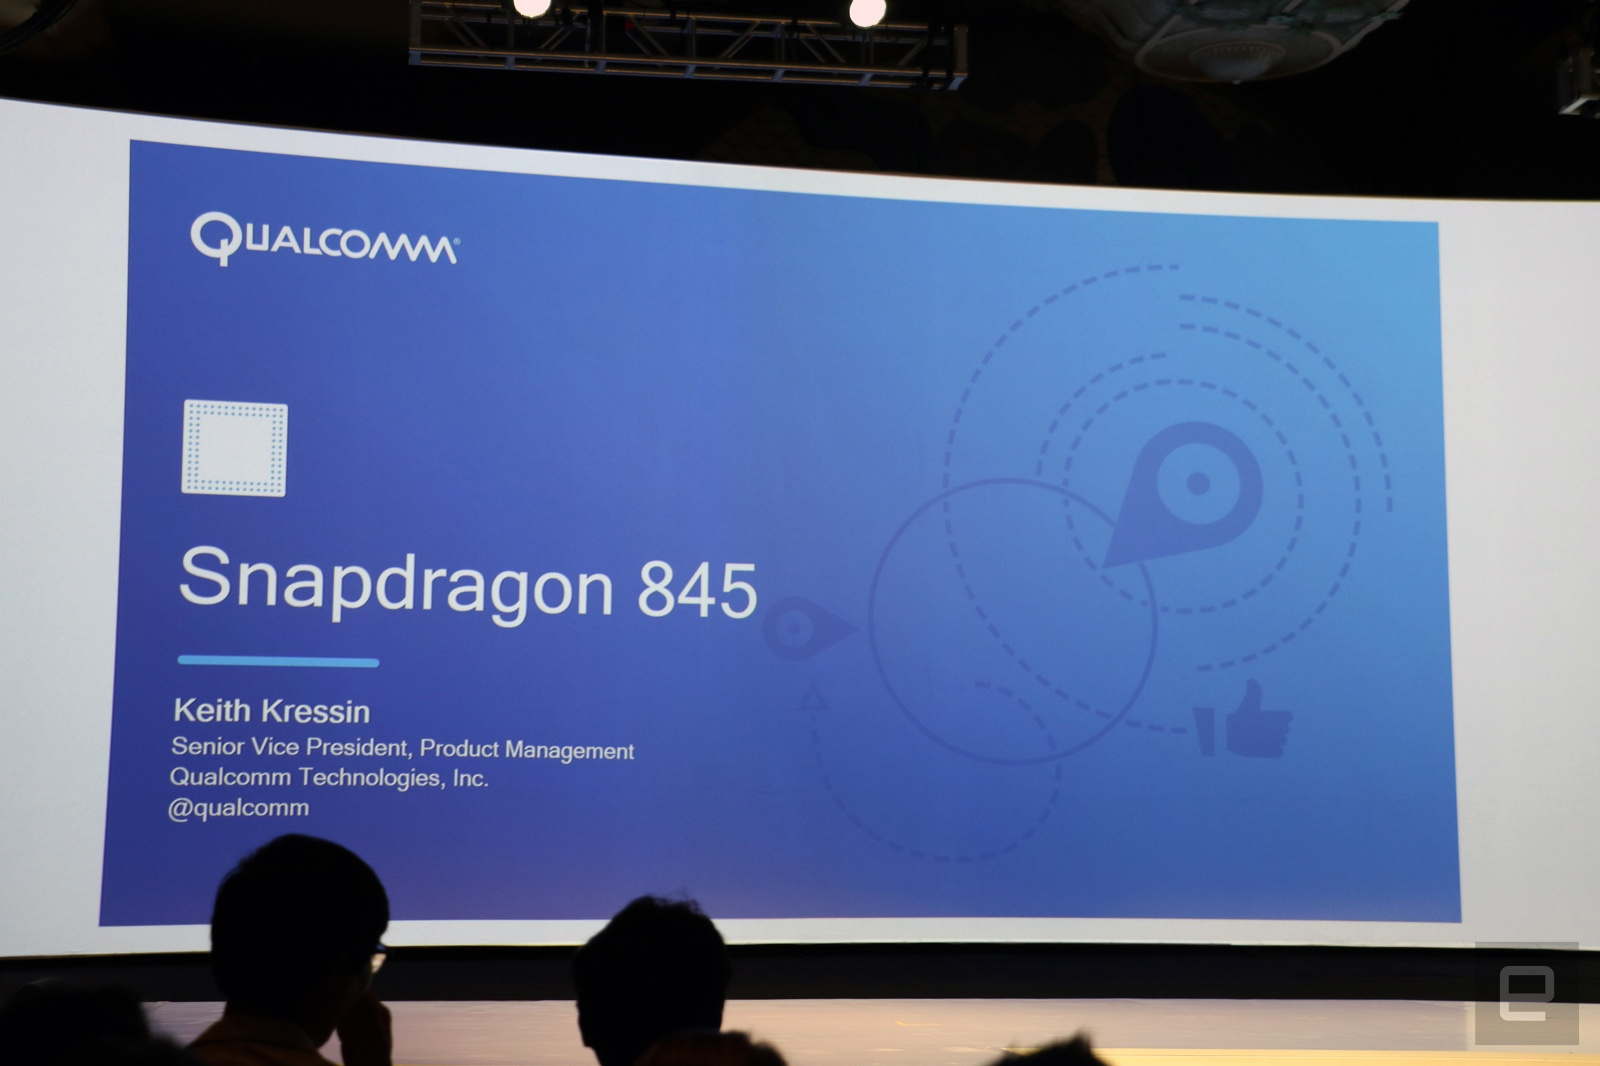 Qualcomm's Snapdragon 845 doubles down on cameras and AI